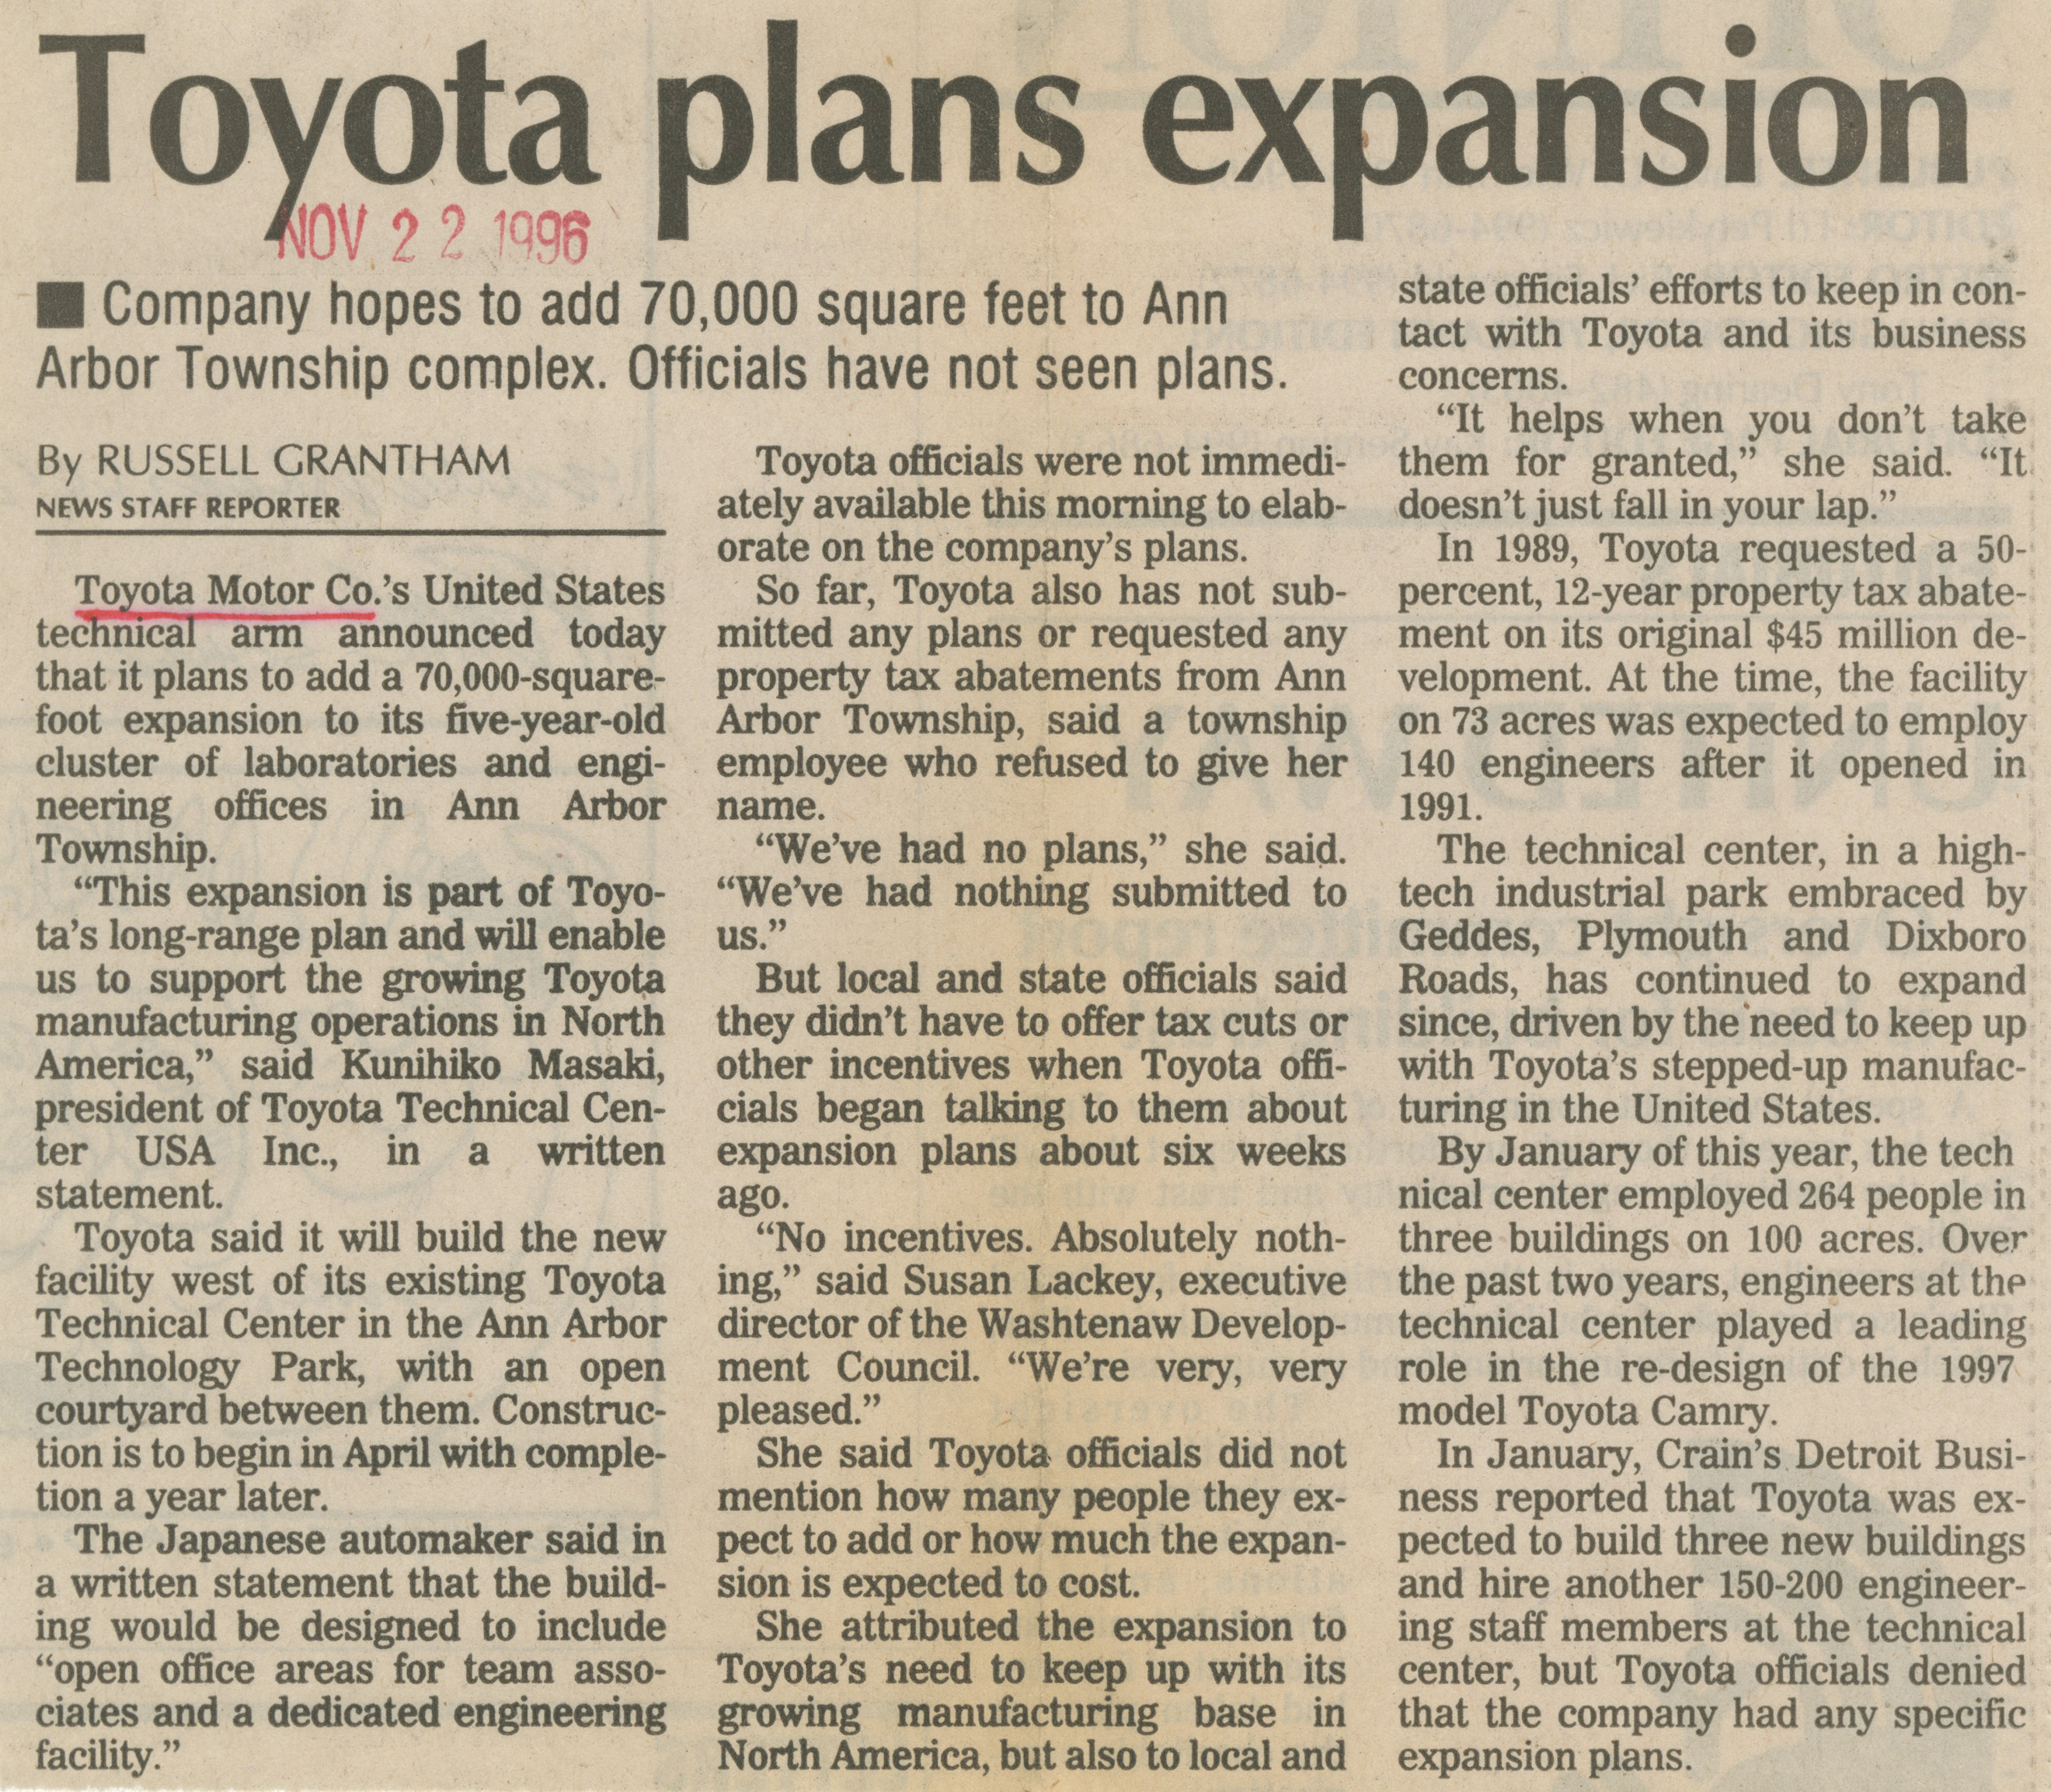 Toyota Plans Expansion image